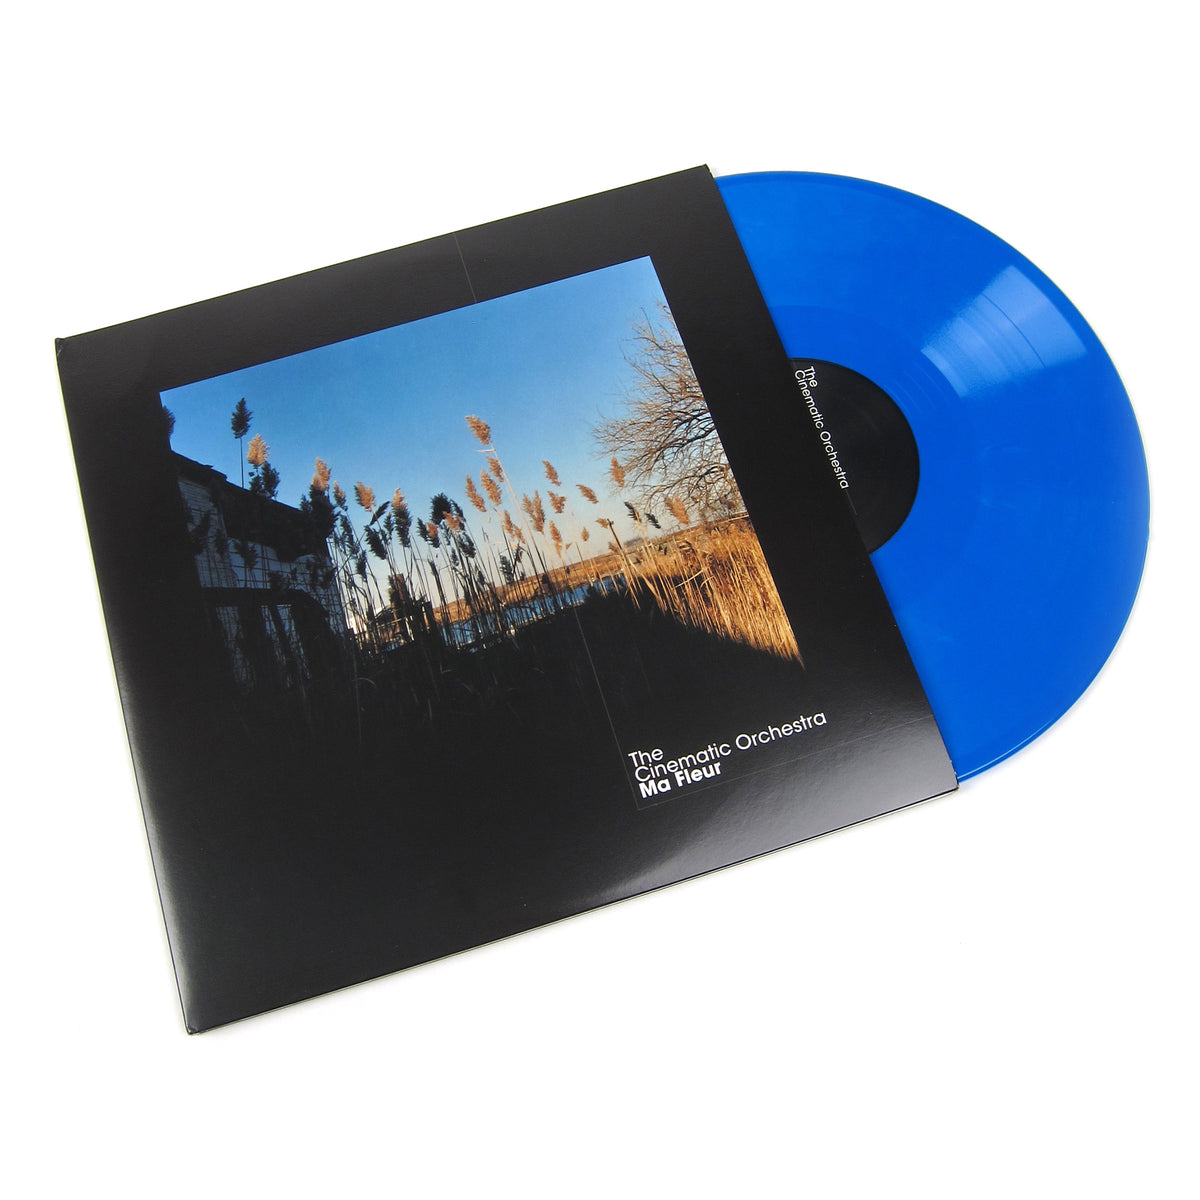 The Cinematic Orchestra: Ma Fleur Vinyl 2LP (Record Store Day)